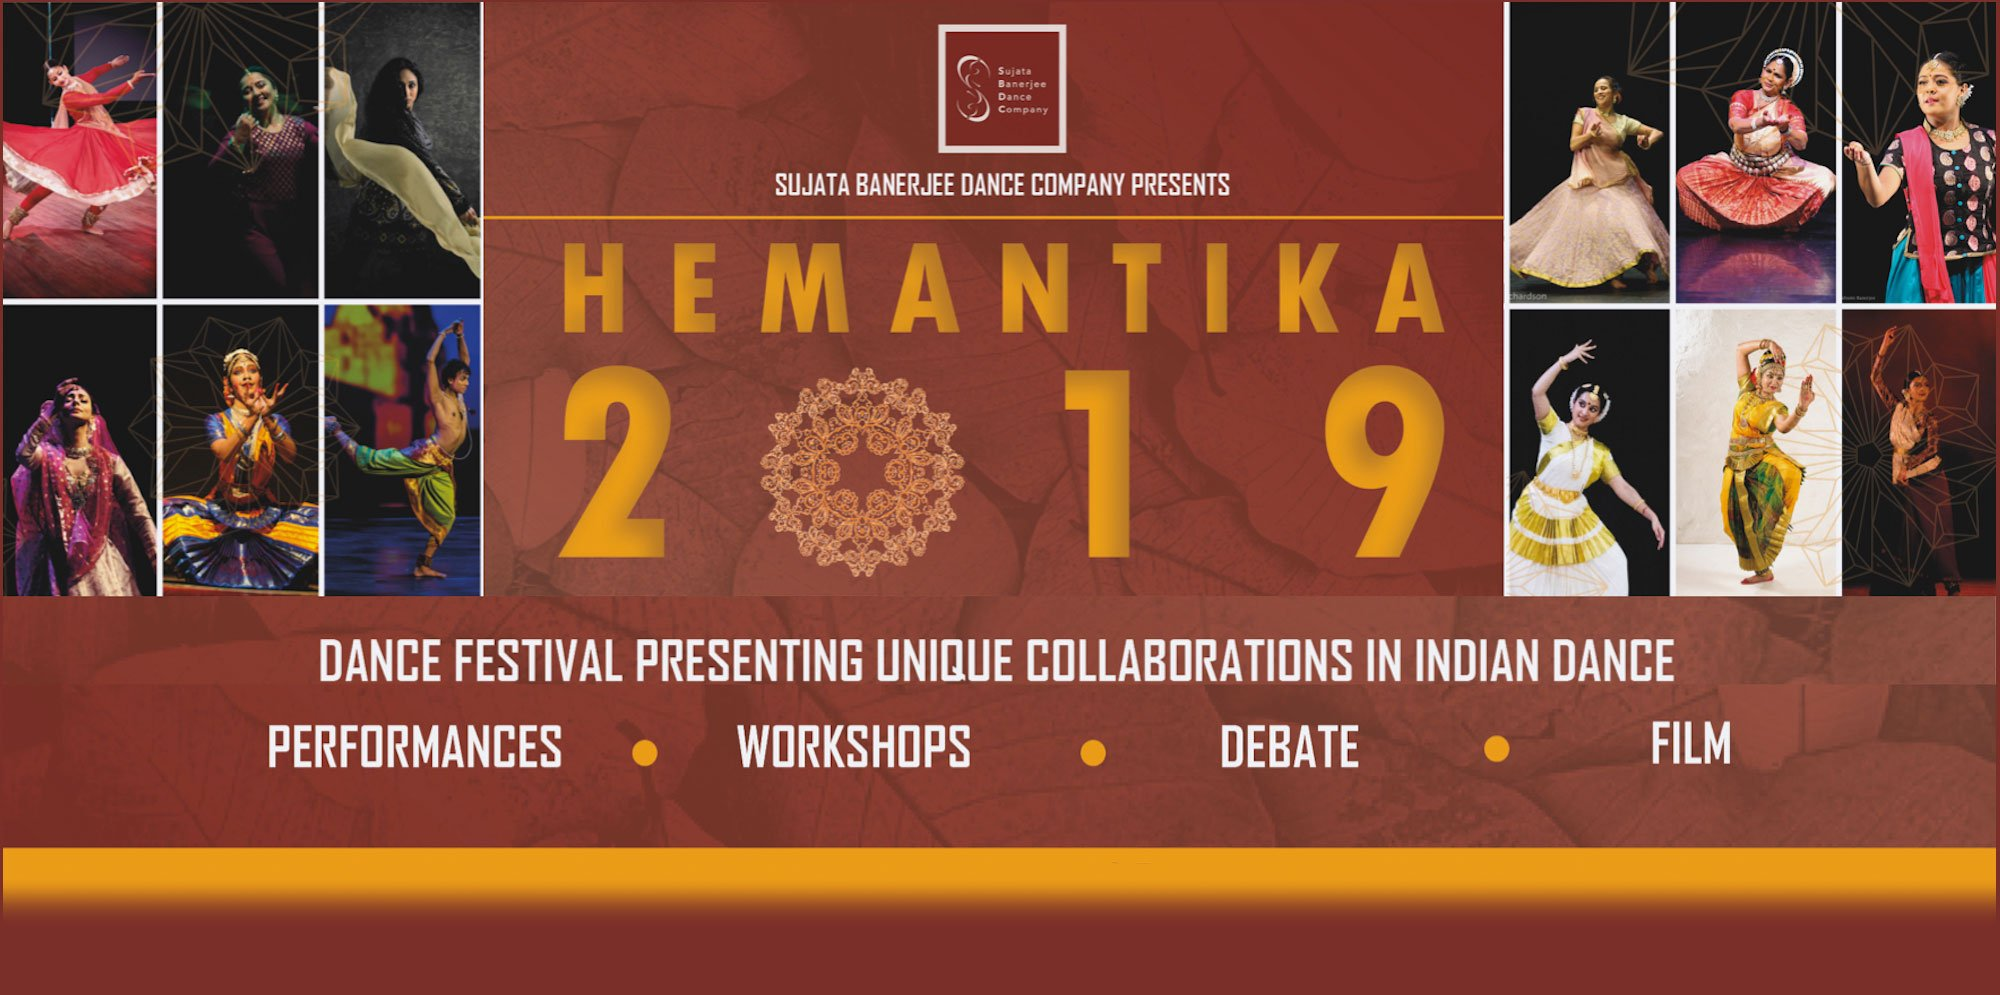 Hemantika Kathak Festival: images of woman in classical Indian dresses dancing, interspersed with text advertising performances, debate, workshop and film